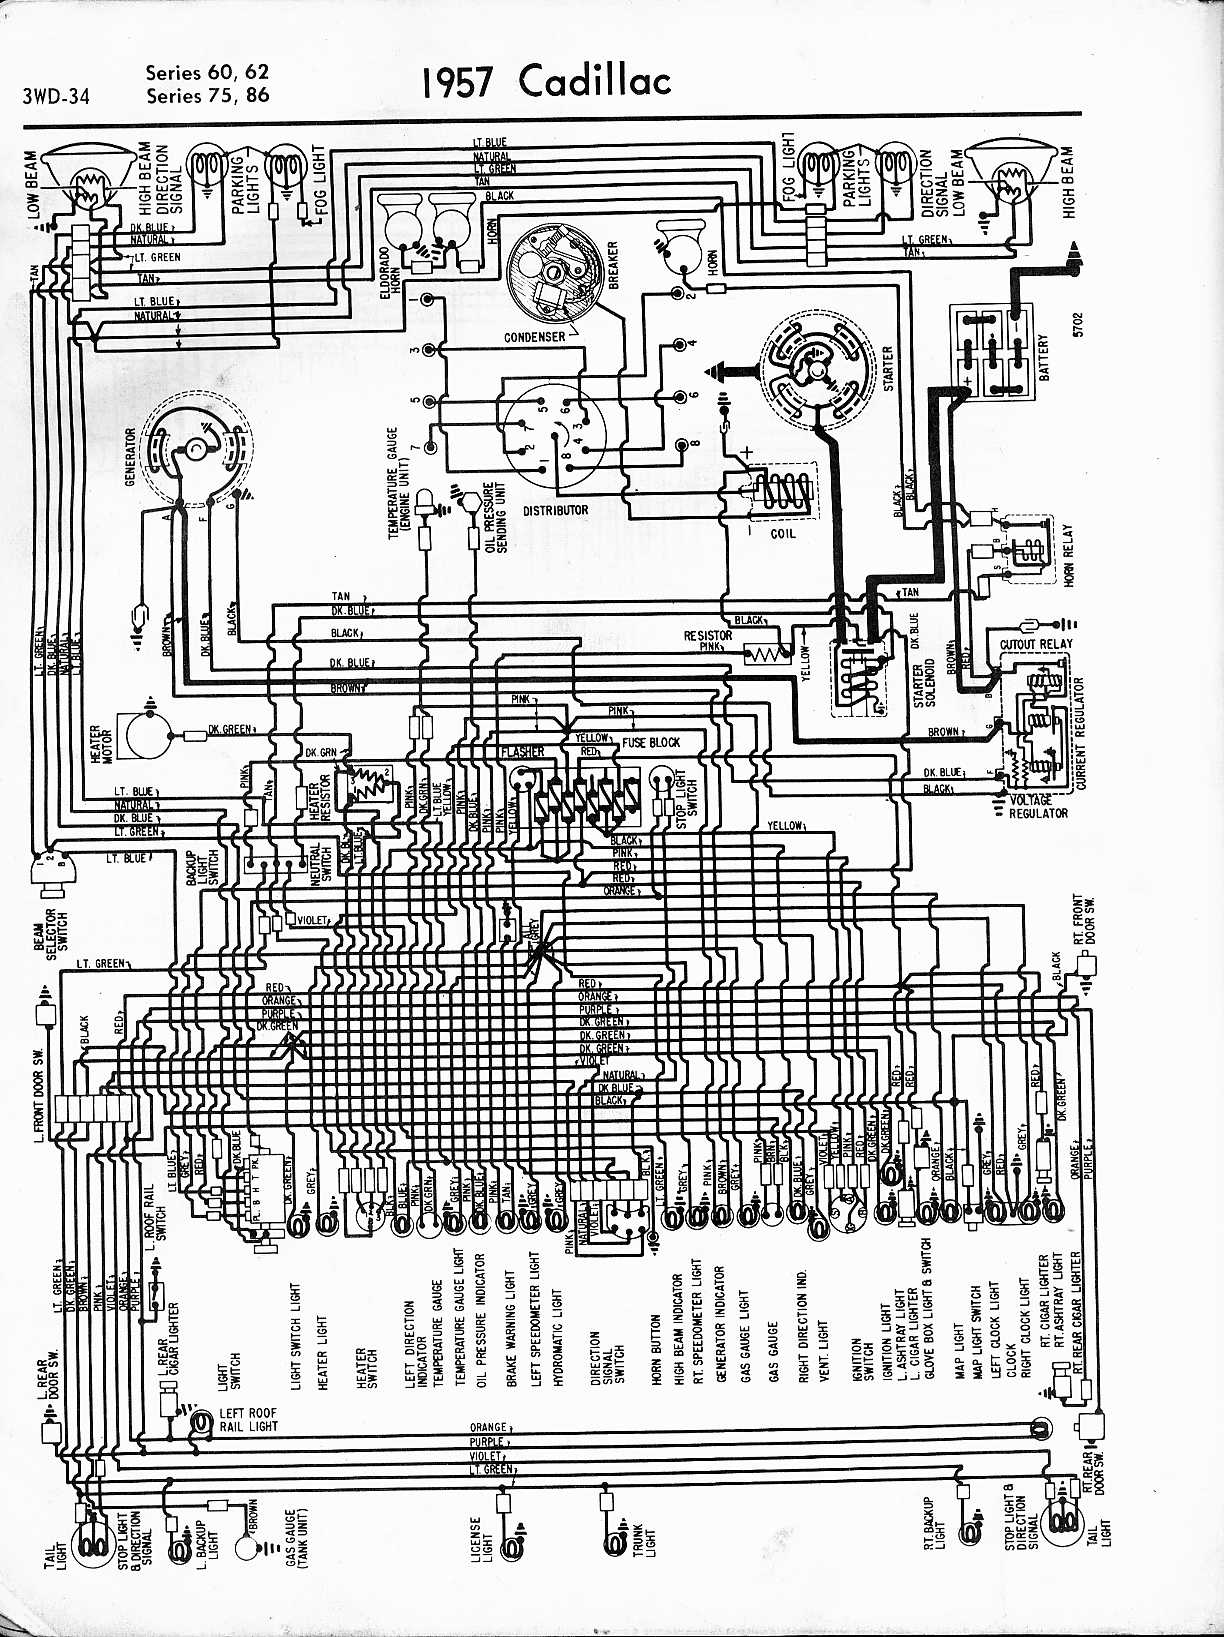 1965 Cadillac Deville Fuse Box Location Starting Know About Wiring 80 Gmc Diagrams 1957 Rh Oldcarmanualproject Com